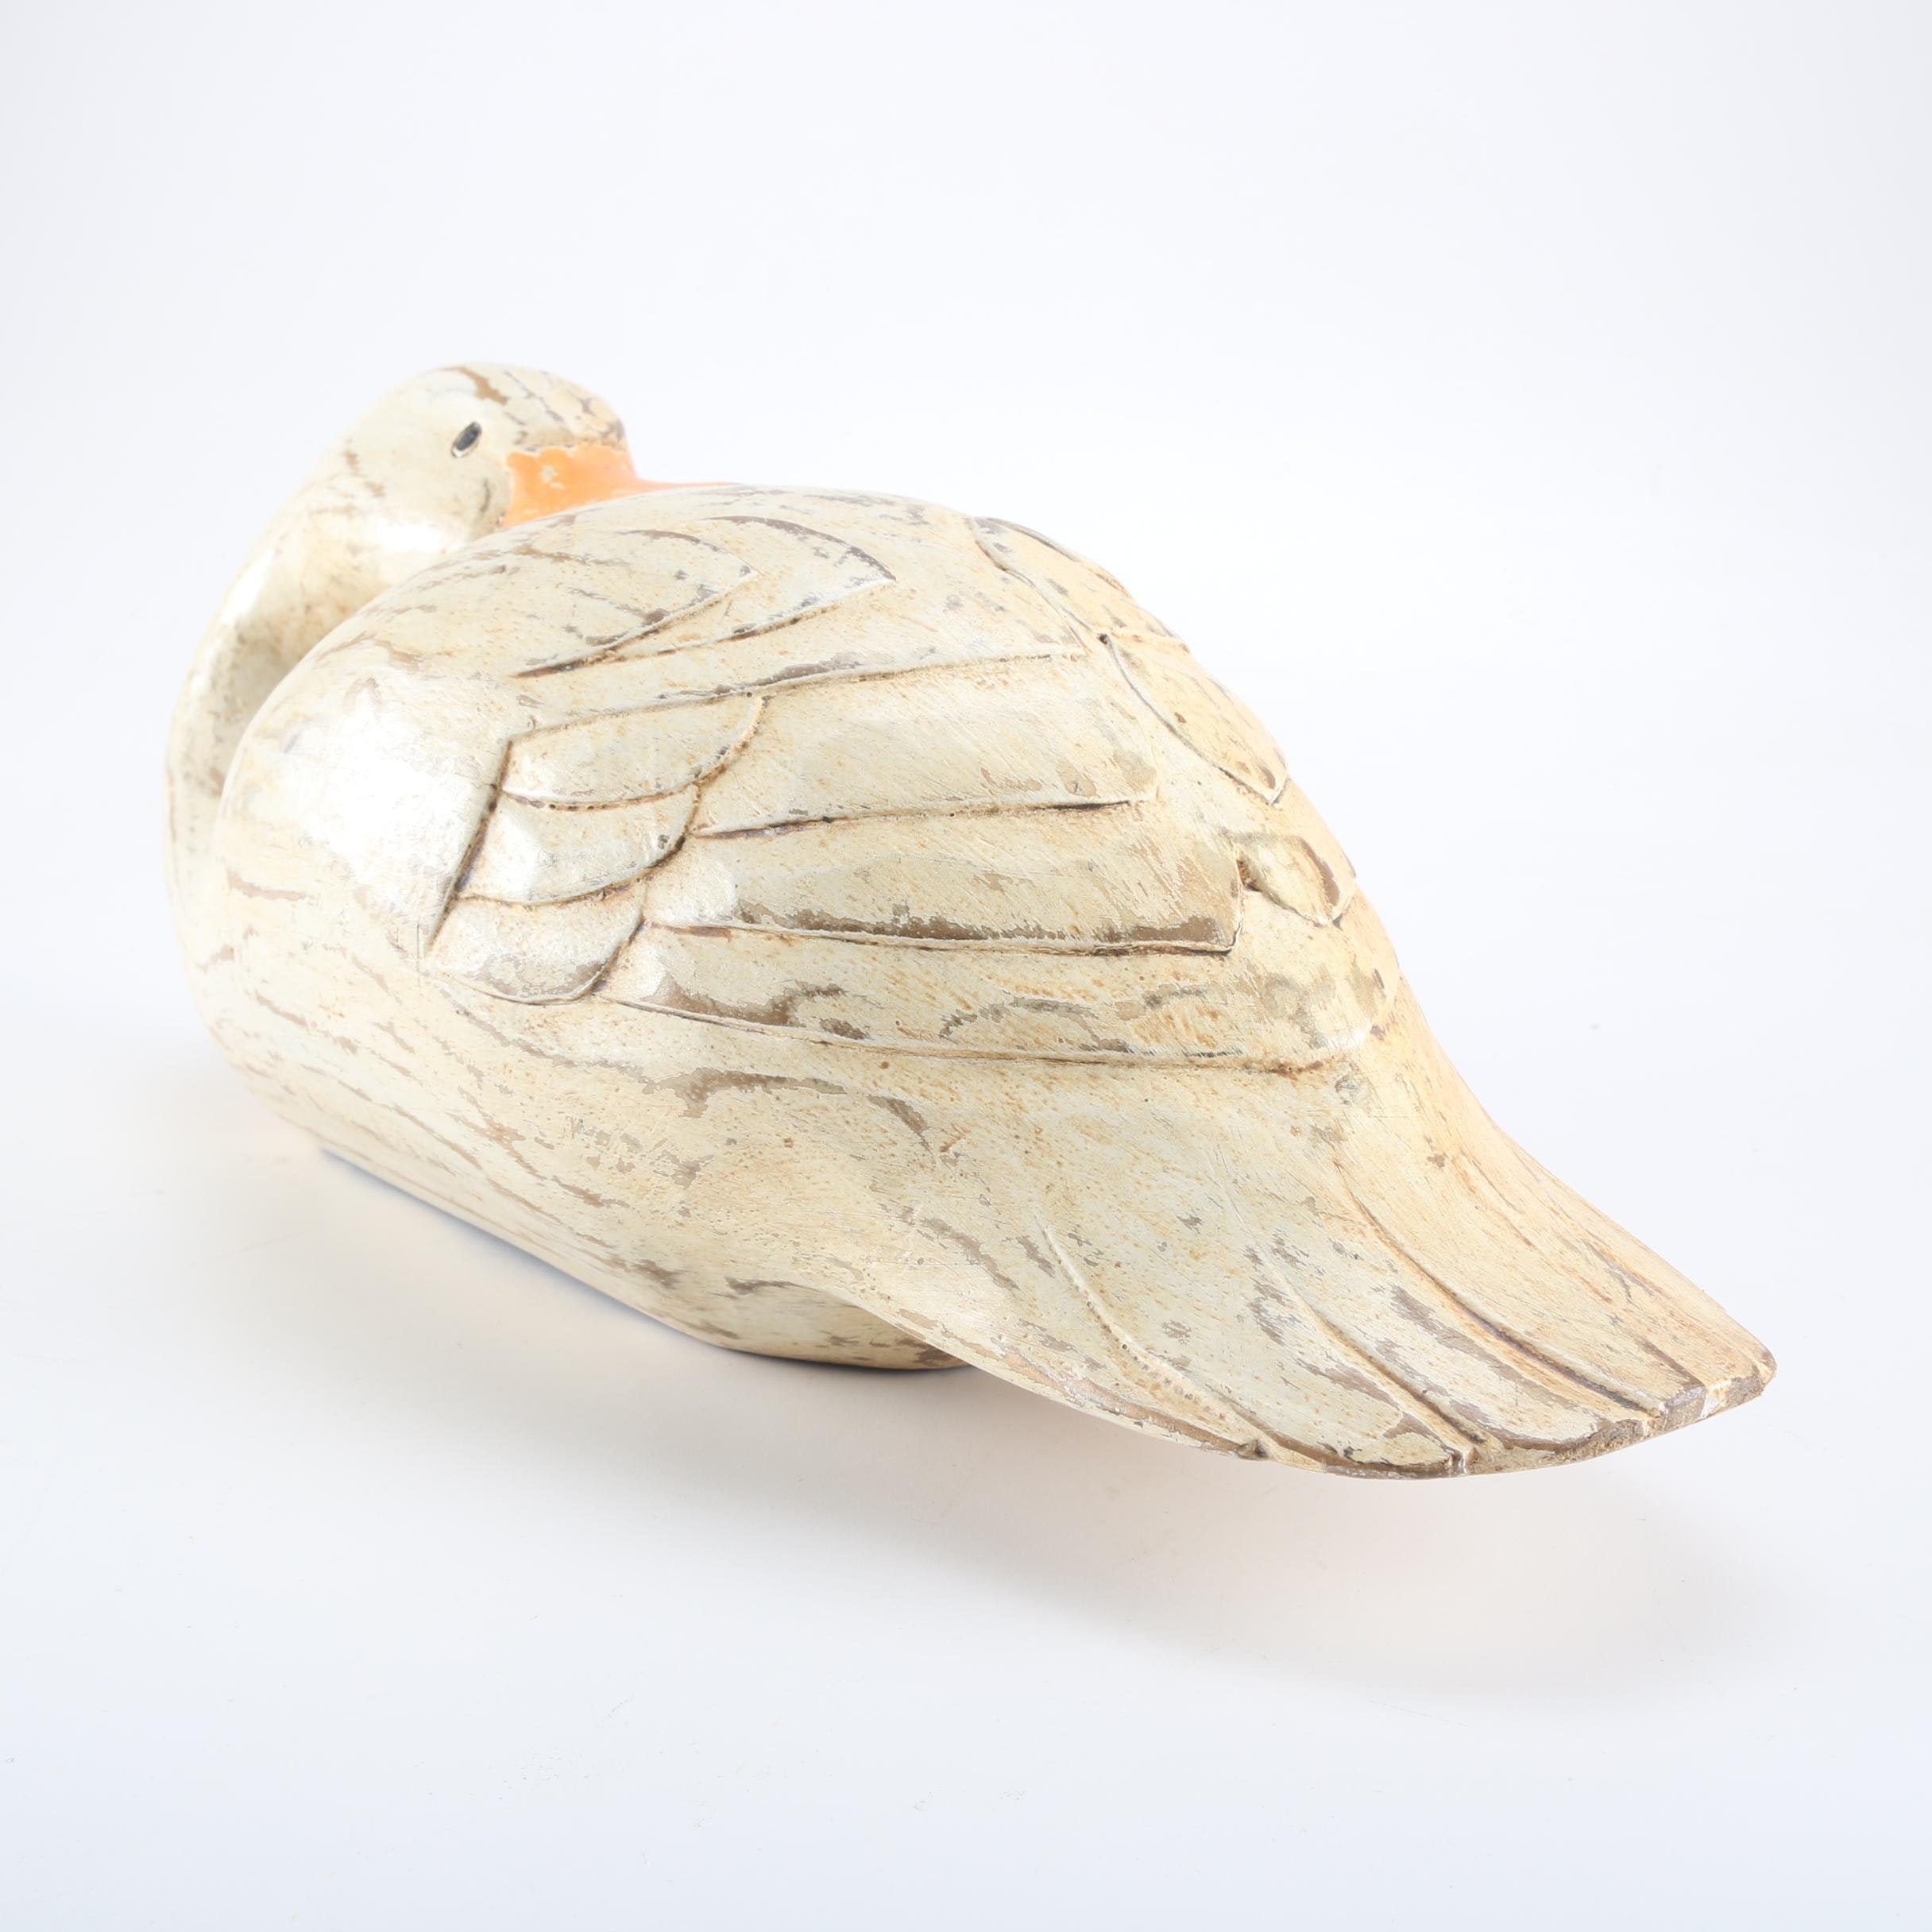 Carved Wooden Folk Art Style Preening Goose